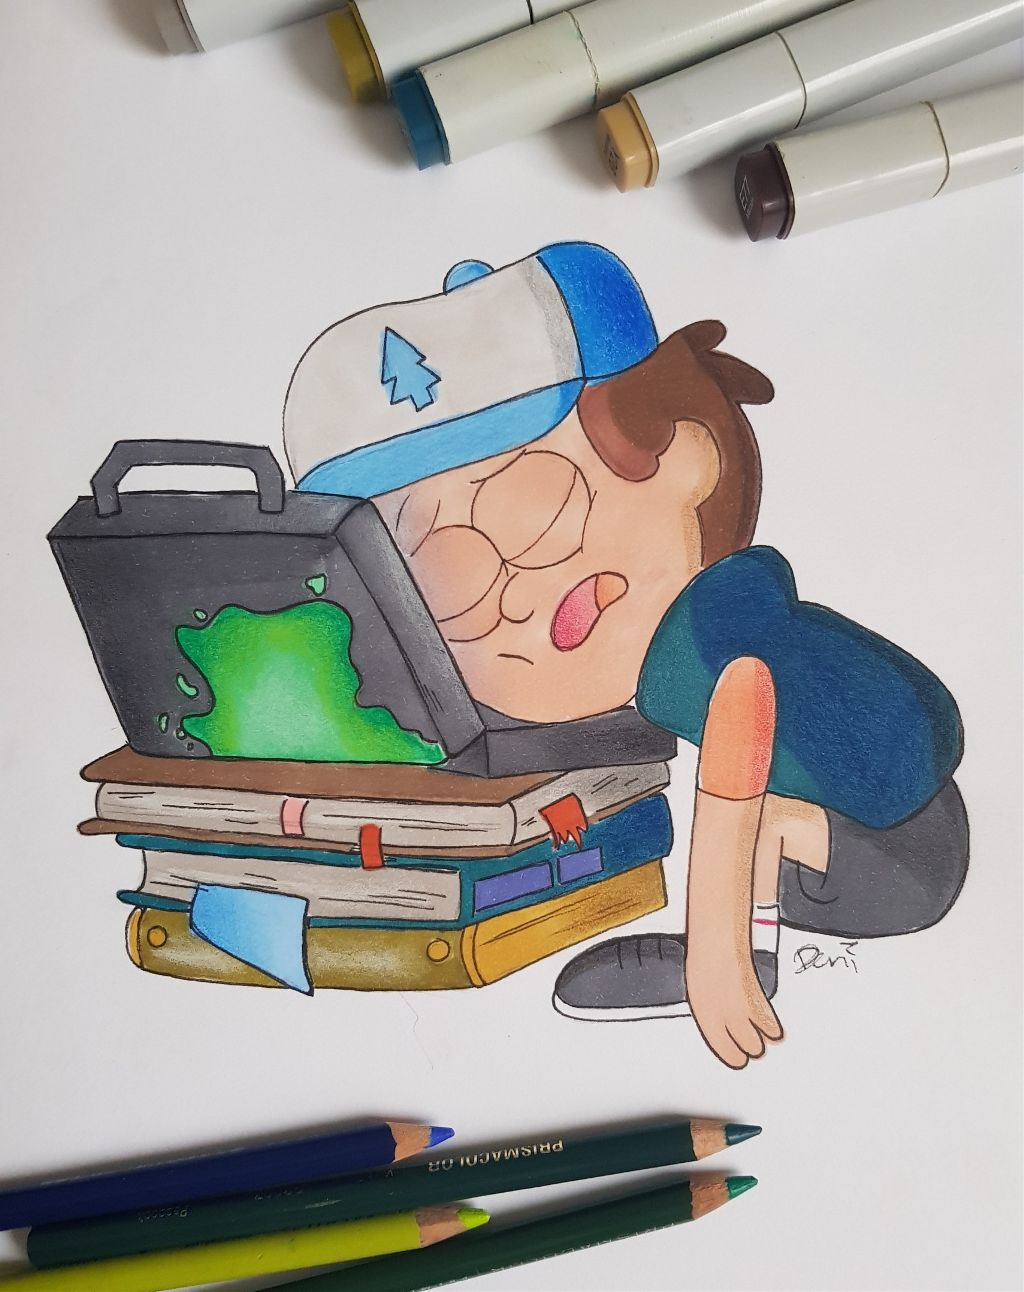 Day 7: #Exhausted  #inktober #inktober2018 #drawing #art #gravityfalls #dipper #copicmarkers #prismacolorpencils #dipperpines  #freetoedit